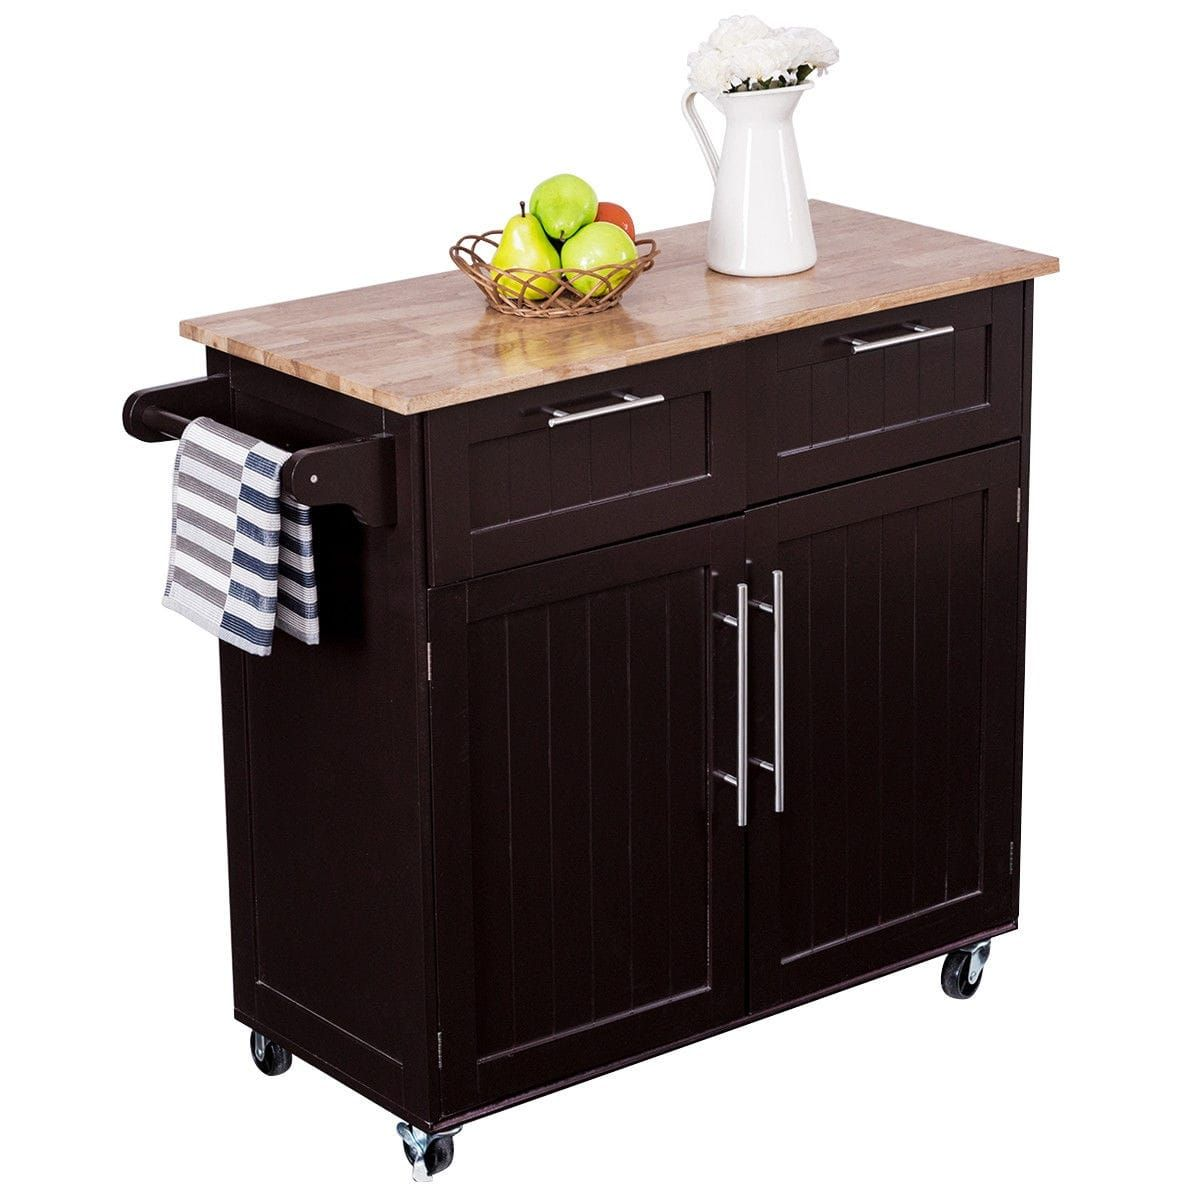 Costway Rolling Kitchen Cart Island (Blue) Heavy Duty Storage Trolley  Cabinet Utility Modern